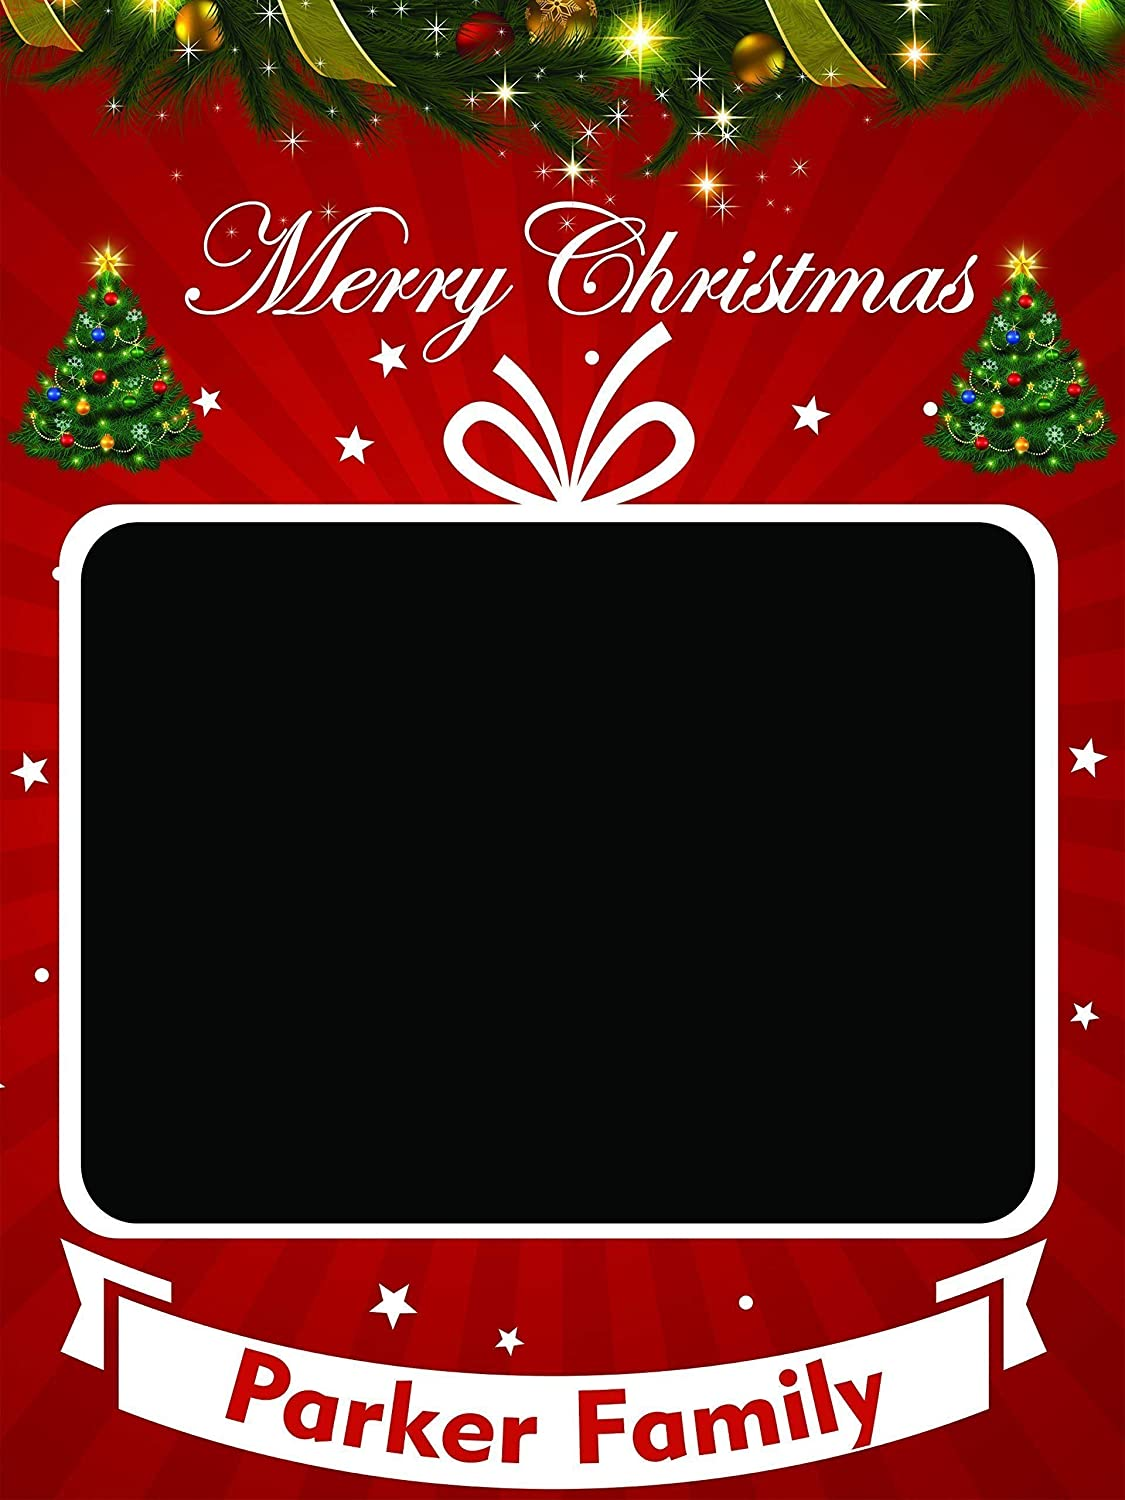 Merry Christmas Family.Large Custom Merry Christmas Photo Booth Frame Prop Christmas Tree Christmas Frames Xmas Decoration Christmas Photo Booth Prop Christmas Party